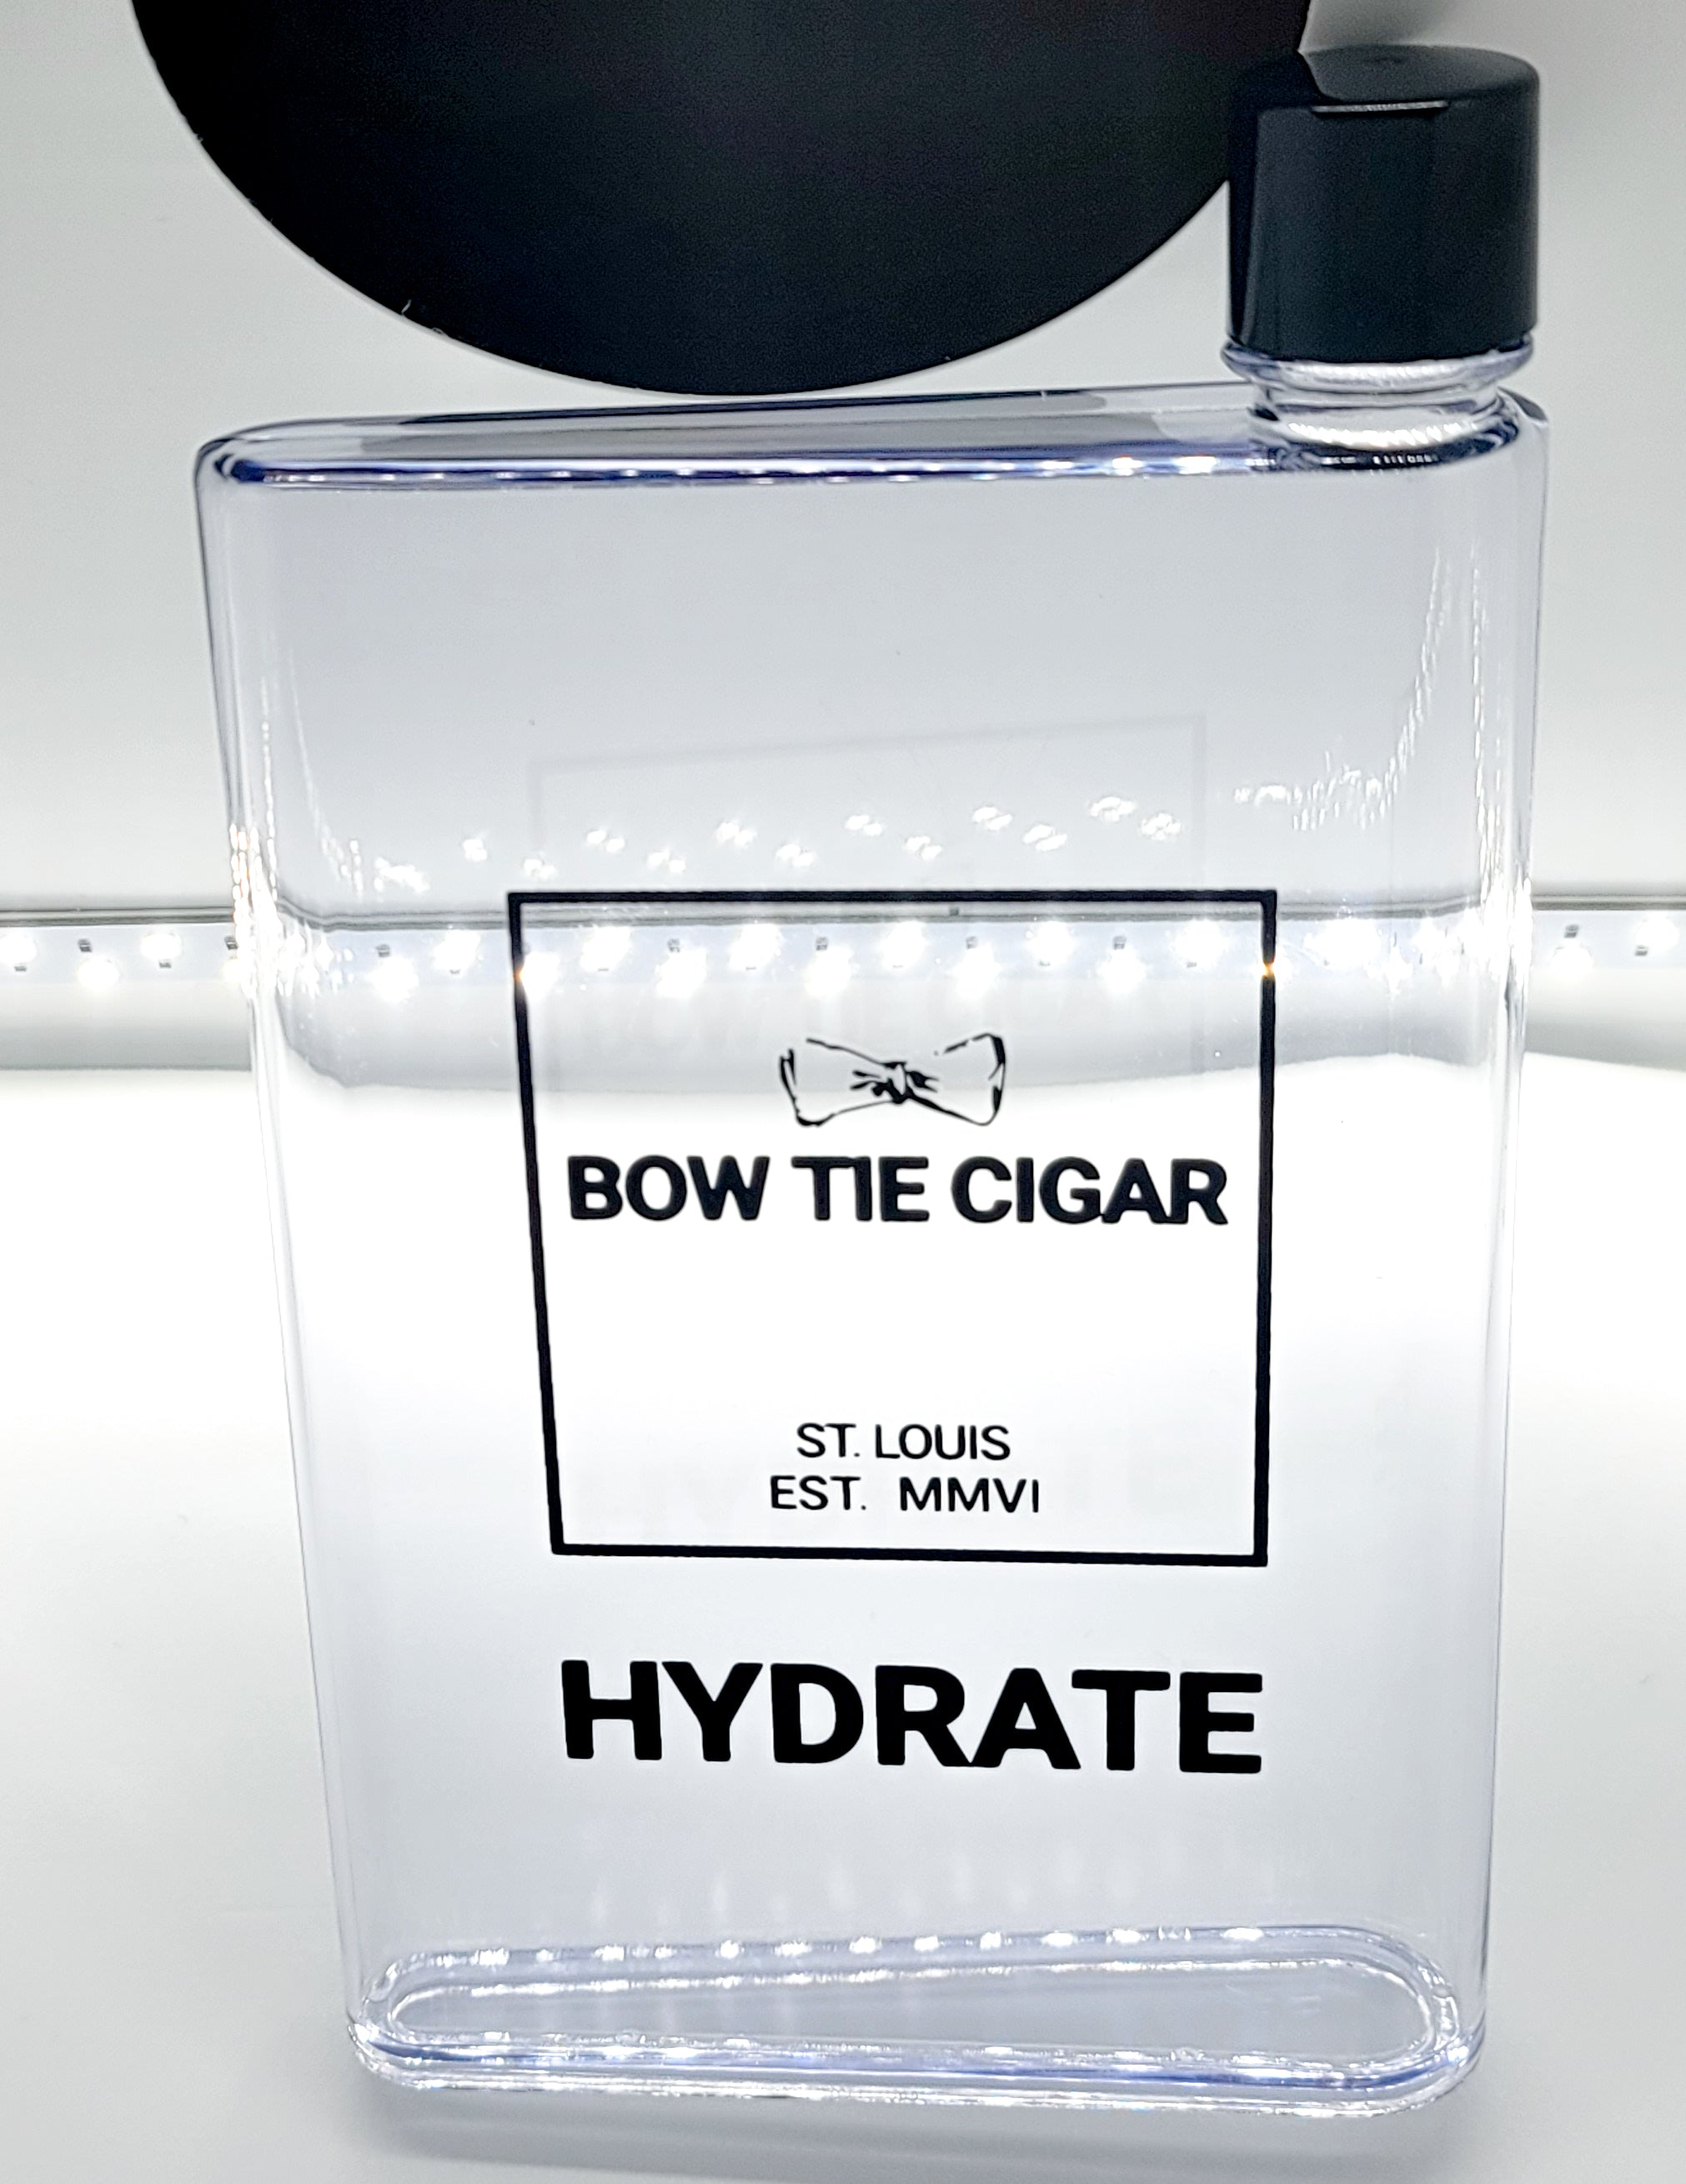 WATER BOTTLE FLASK - BOW TIE CIGAR